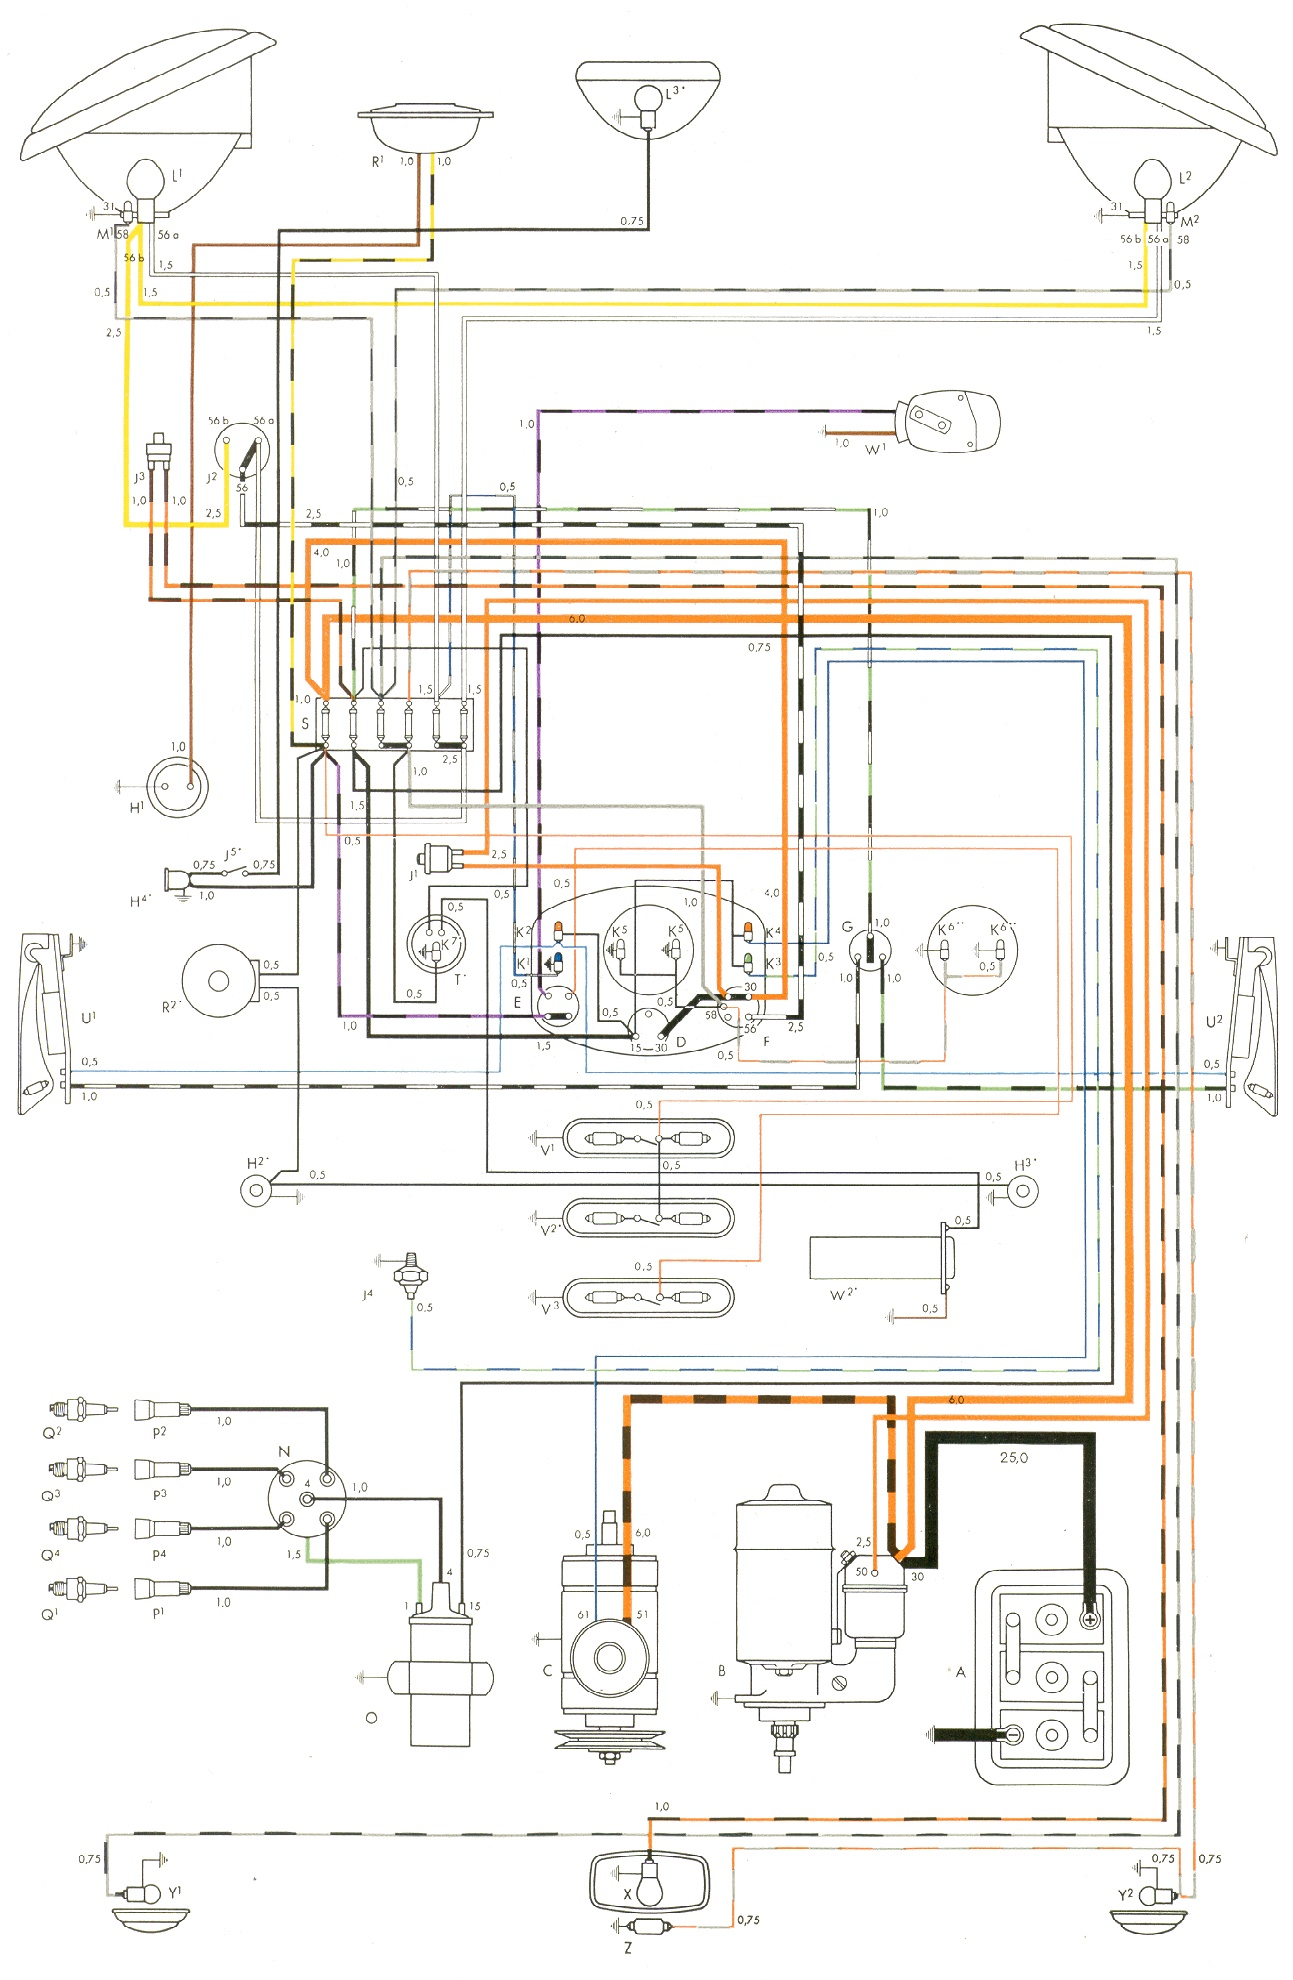 thomas bus wiring schematics best part of wiring diagram Wiring Diagram for 1979 VW Super Beetle 2003 thomas bus wiring diagram wiring diagrams schematicthomas bus wiring schematics best wiring library dt466 diesel